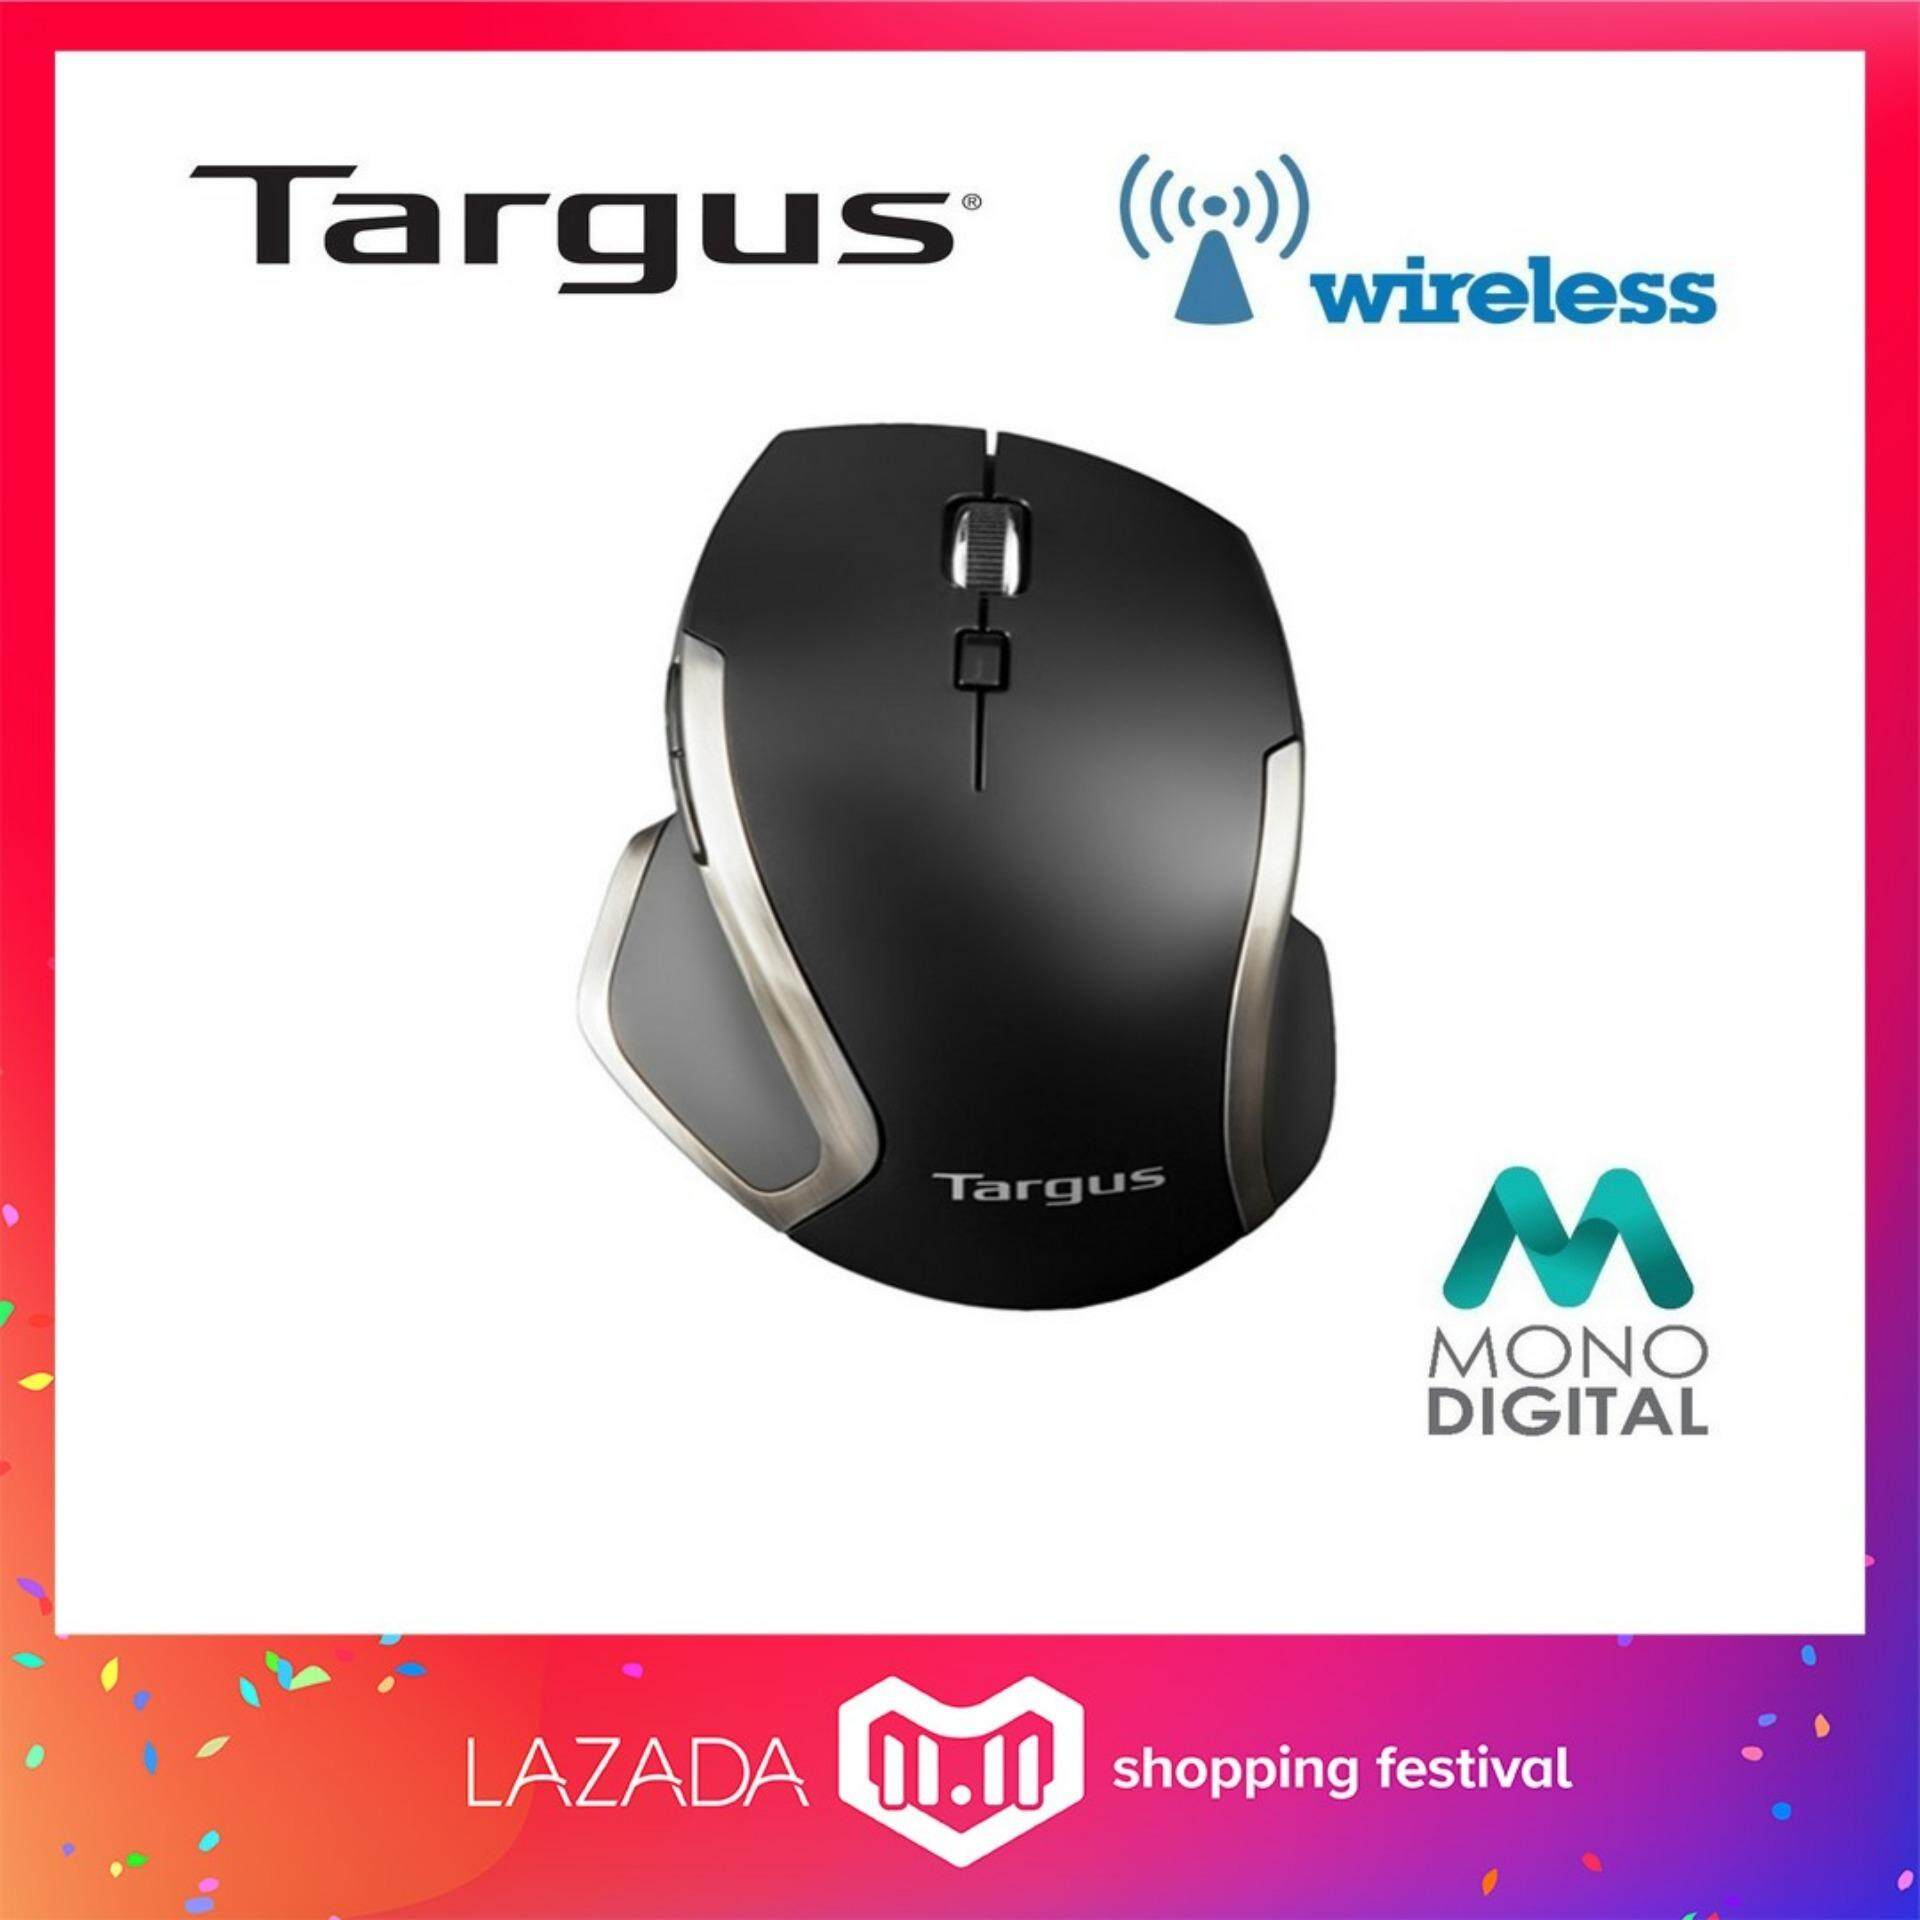 Targus Computer Accessories Mice Price In Malaysia Best Wireless Mouse Amw571 1600dpi W574 6 Key Bluetrace Amw574ap 50 Black Original